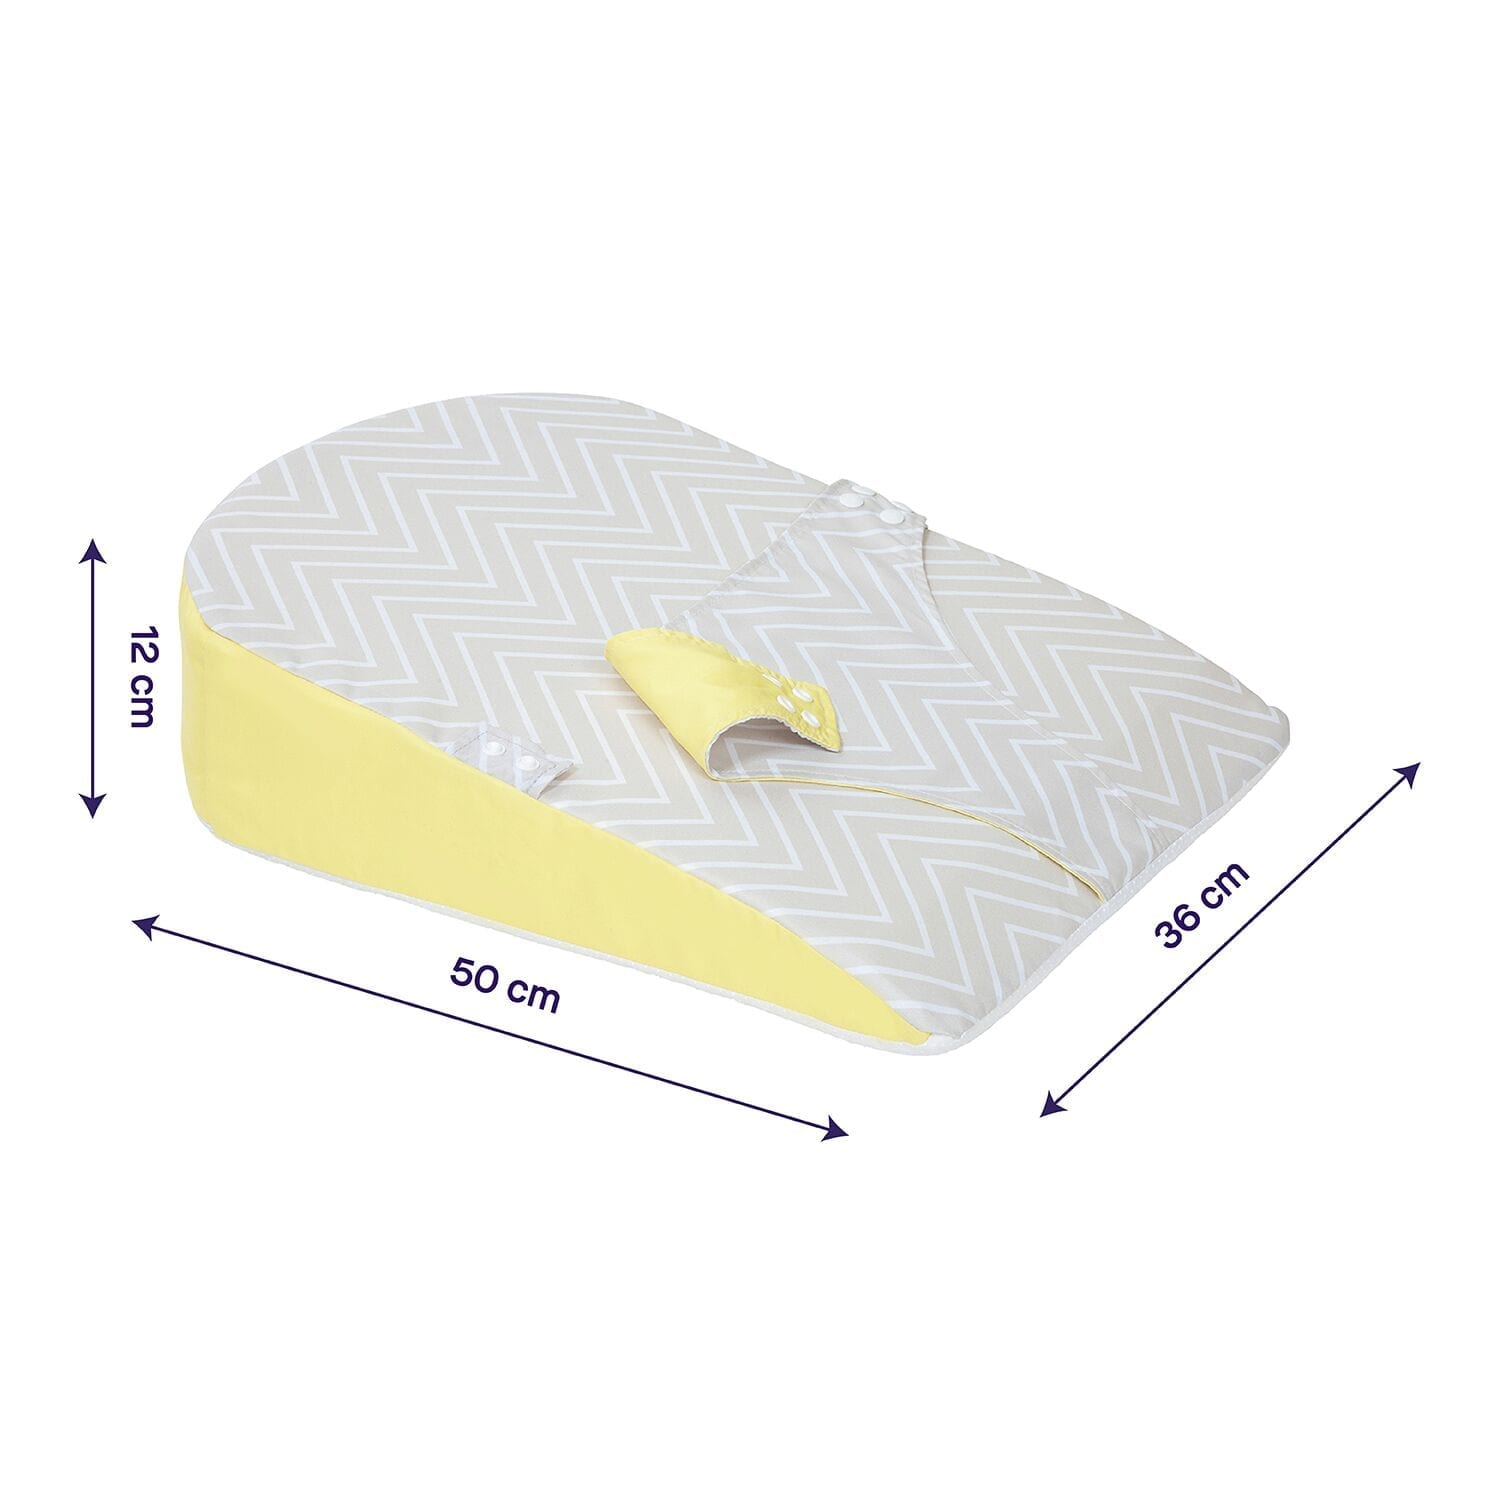 ClevaFoam Reflux wedge Elevate product image